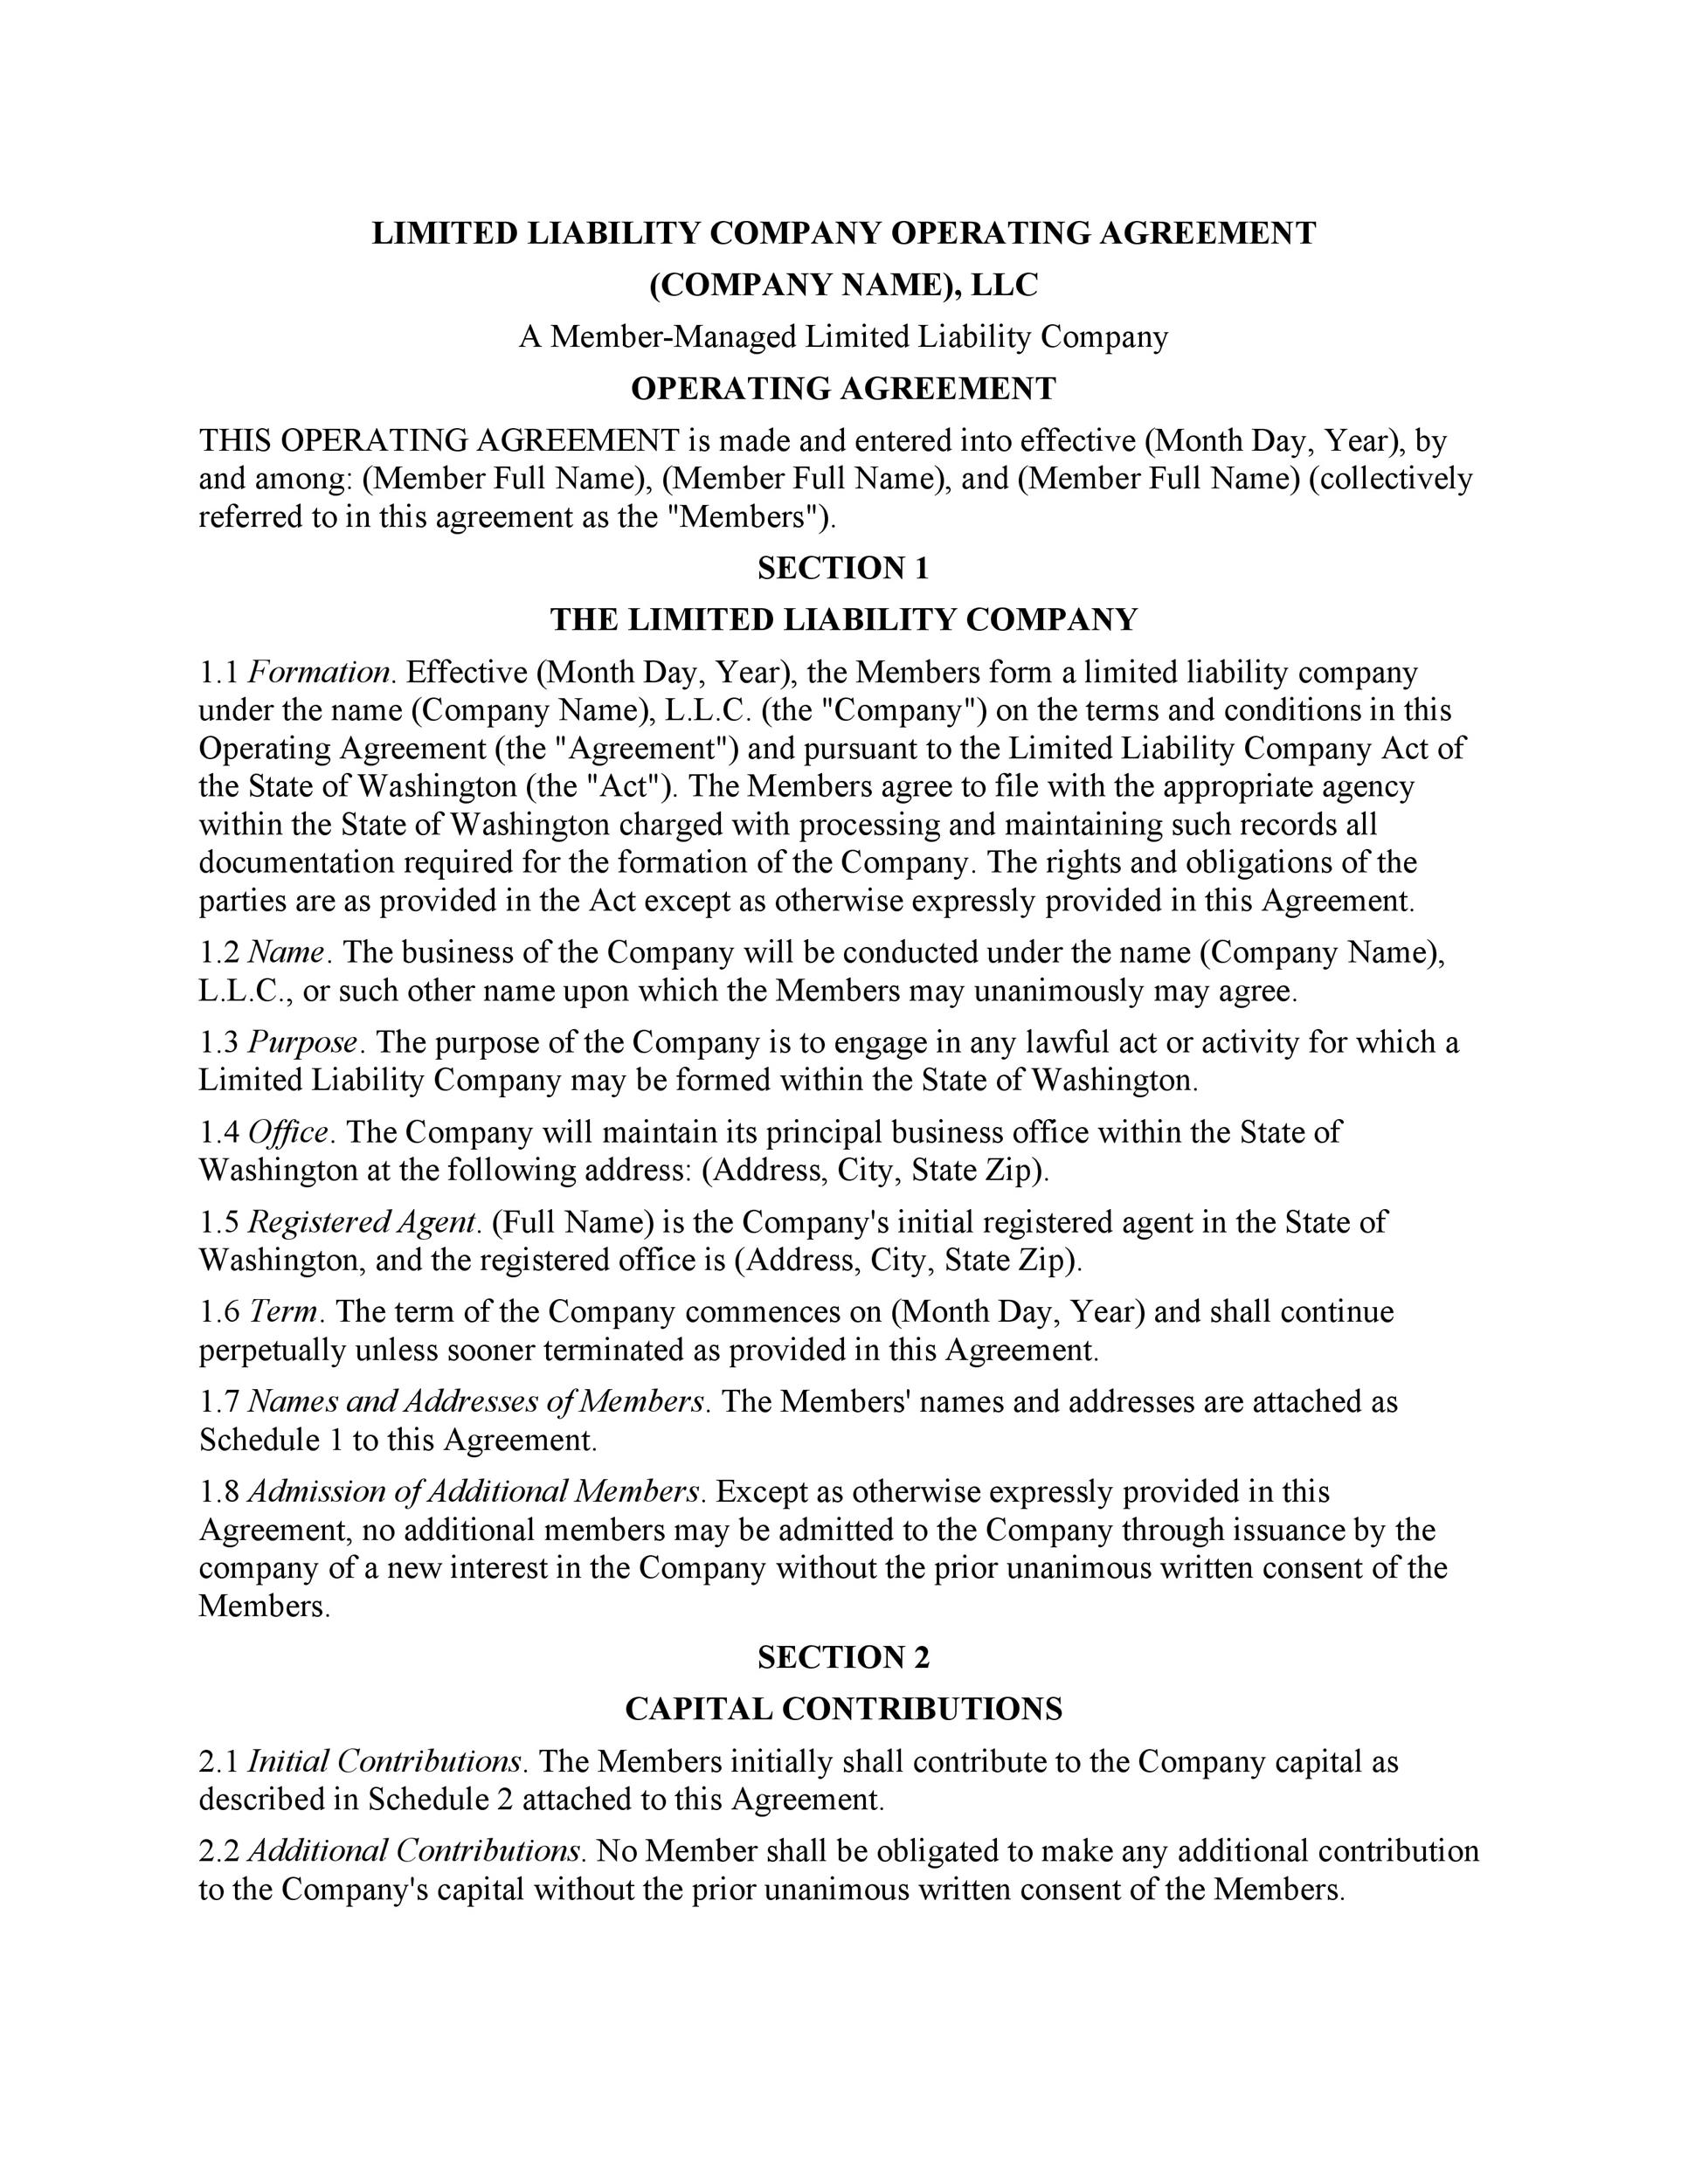 Free llc operating agreement template 01